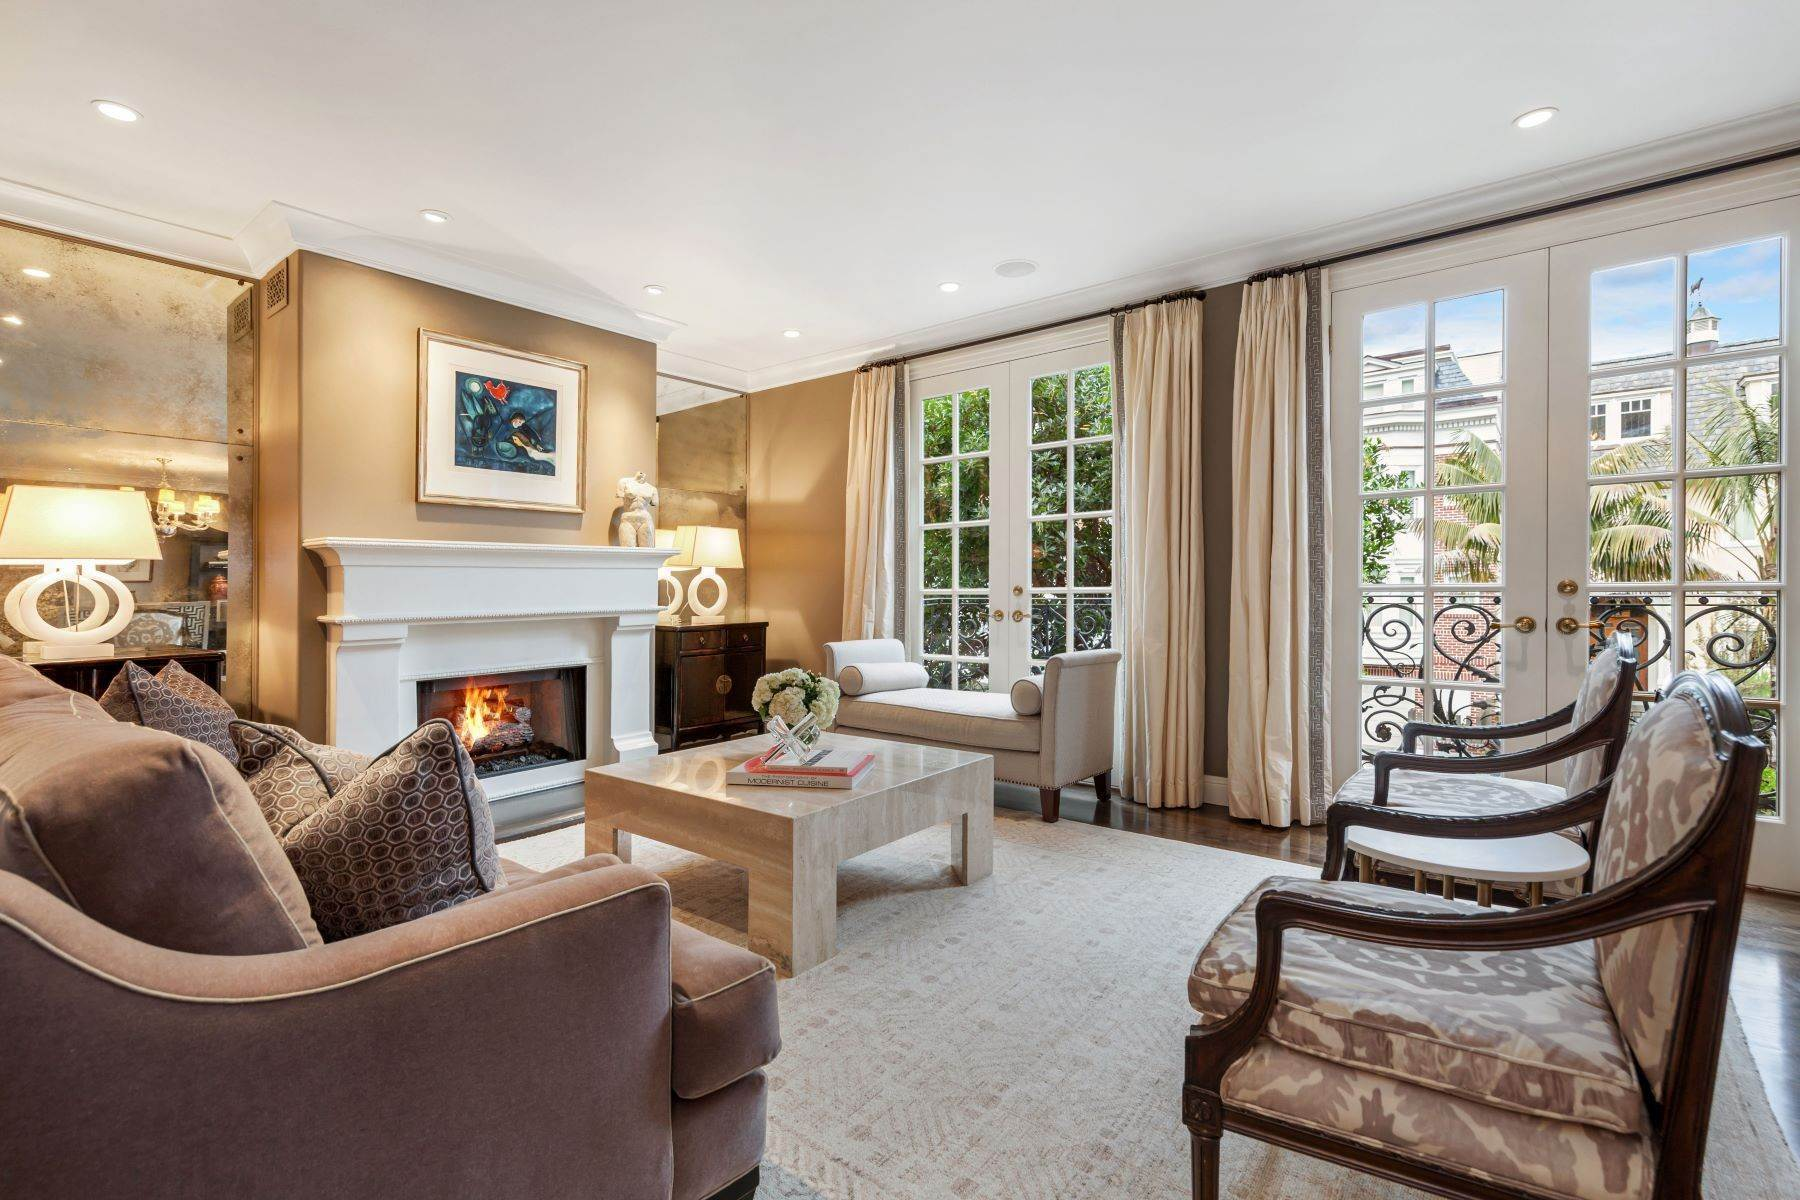 Property for Sale at Exquisite Cow Hollow Home 2775 Green St San Francisco, California 94123 United States